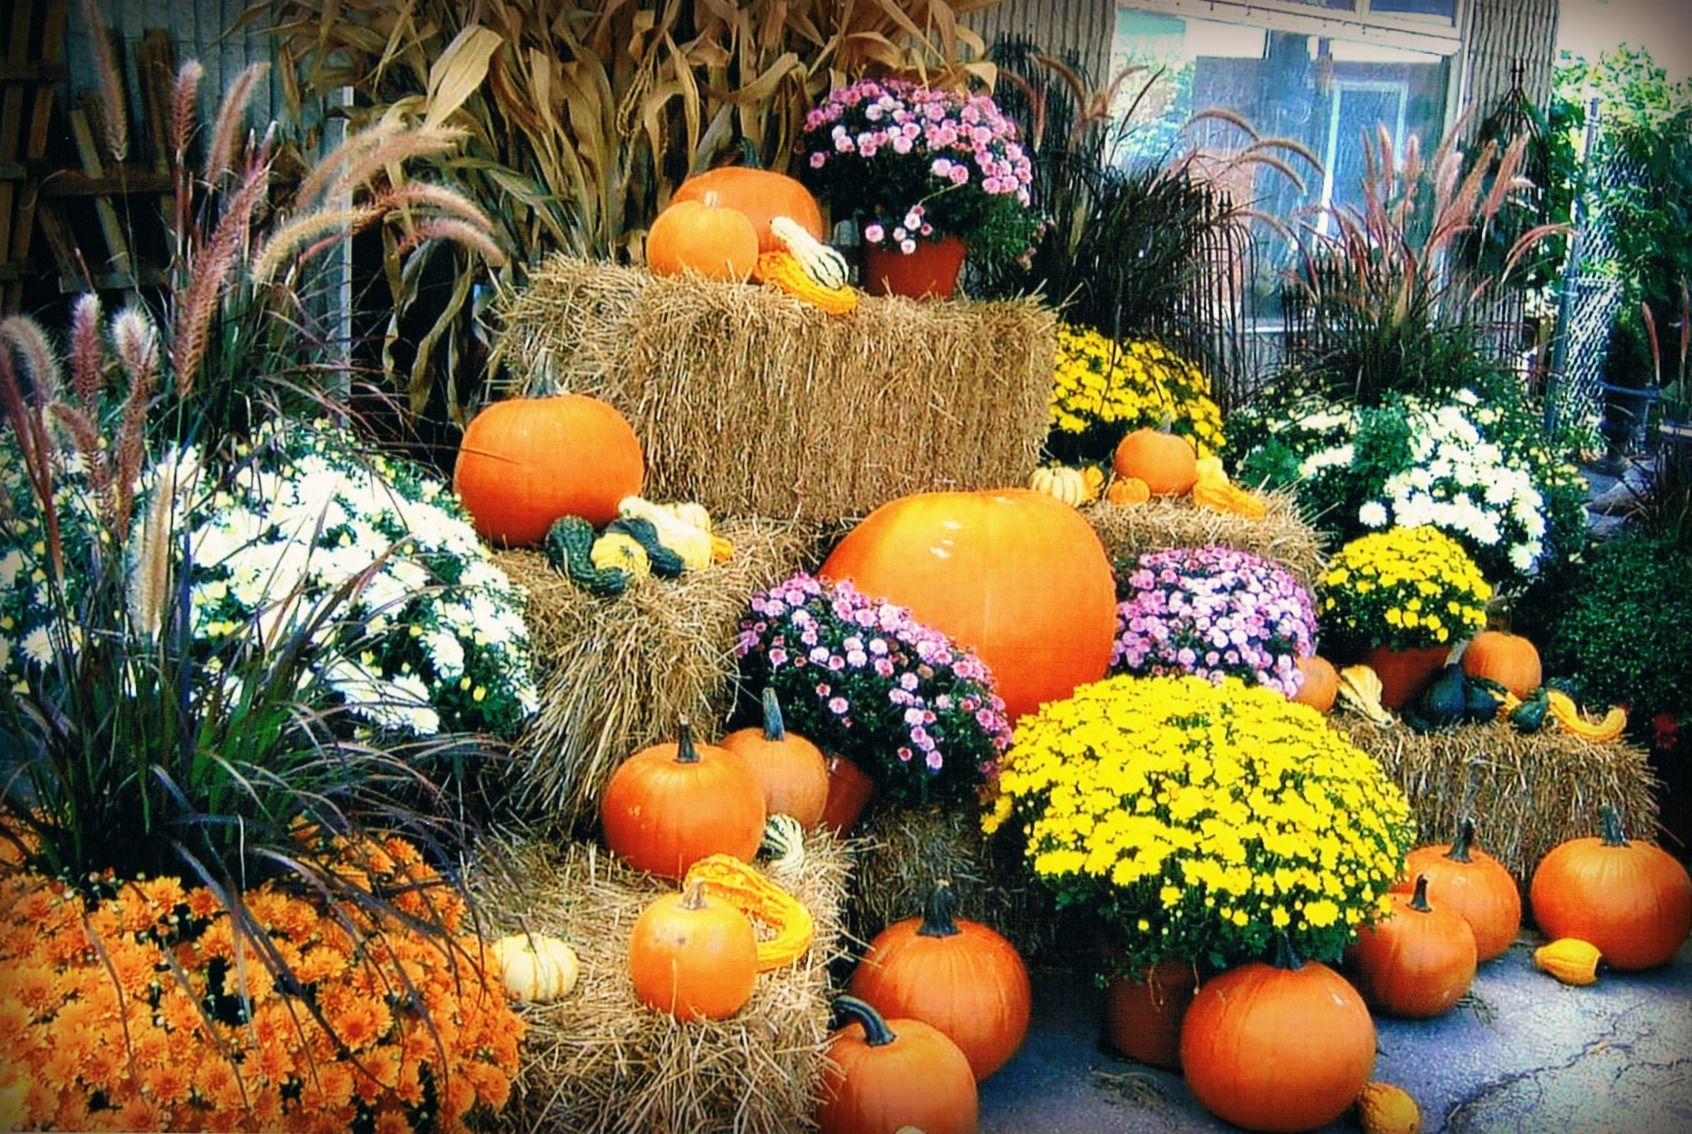 A m garden centre london on outdoor decor fall Fall outdoor decorating with pumpkins